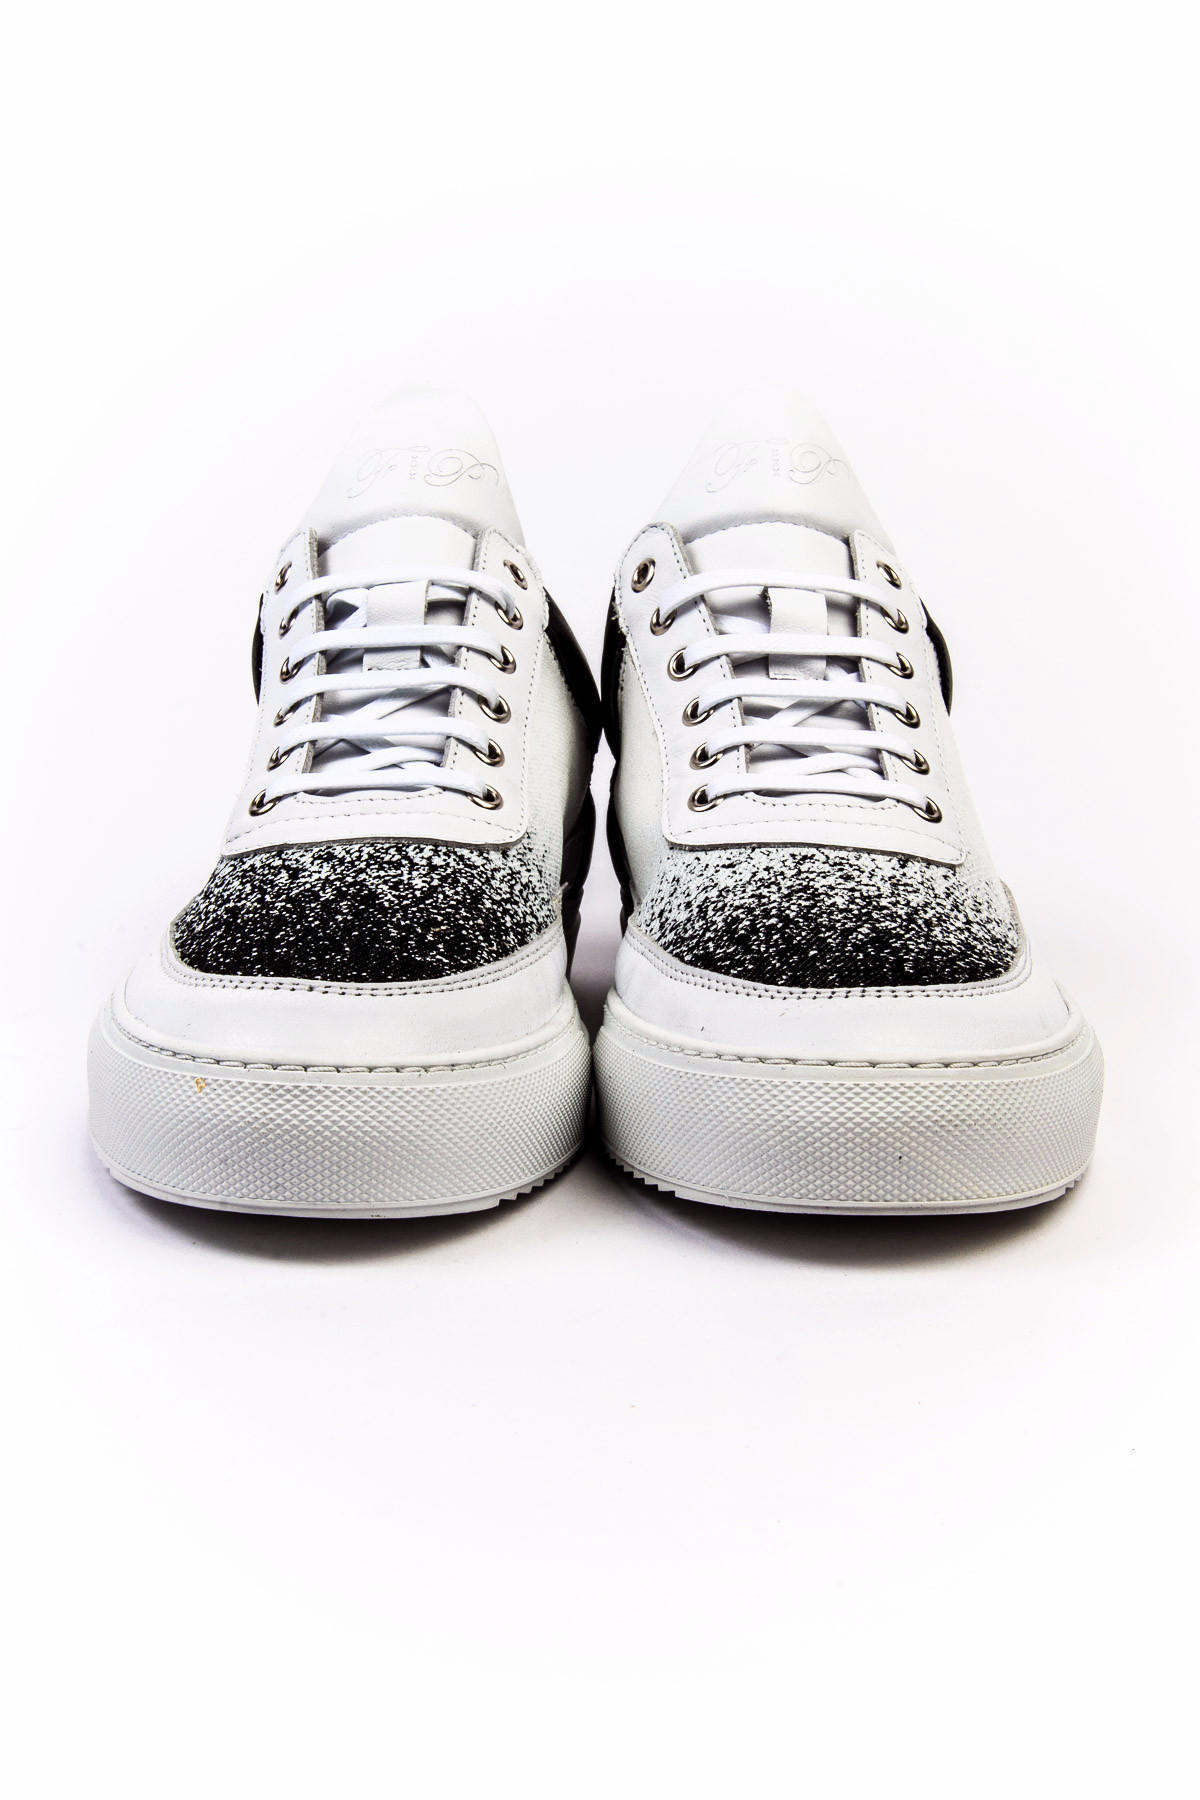 Filling Pieces Low Top Degrade Black White Sneaker 10e7a753b